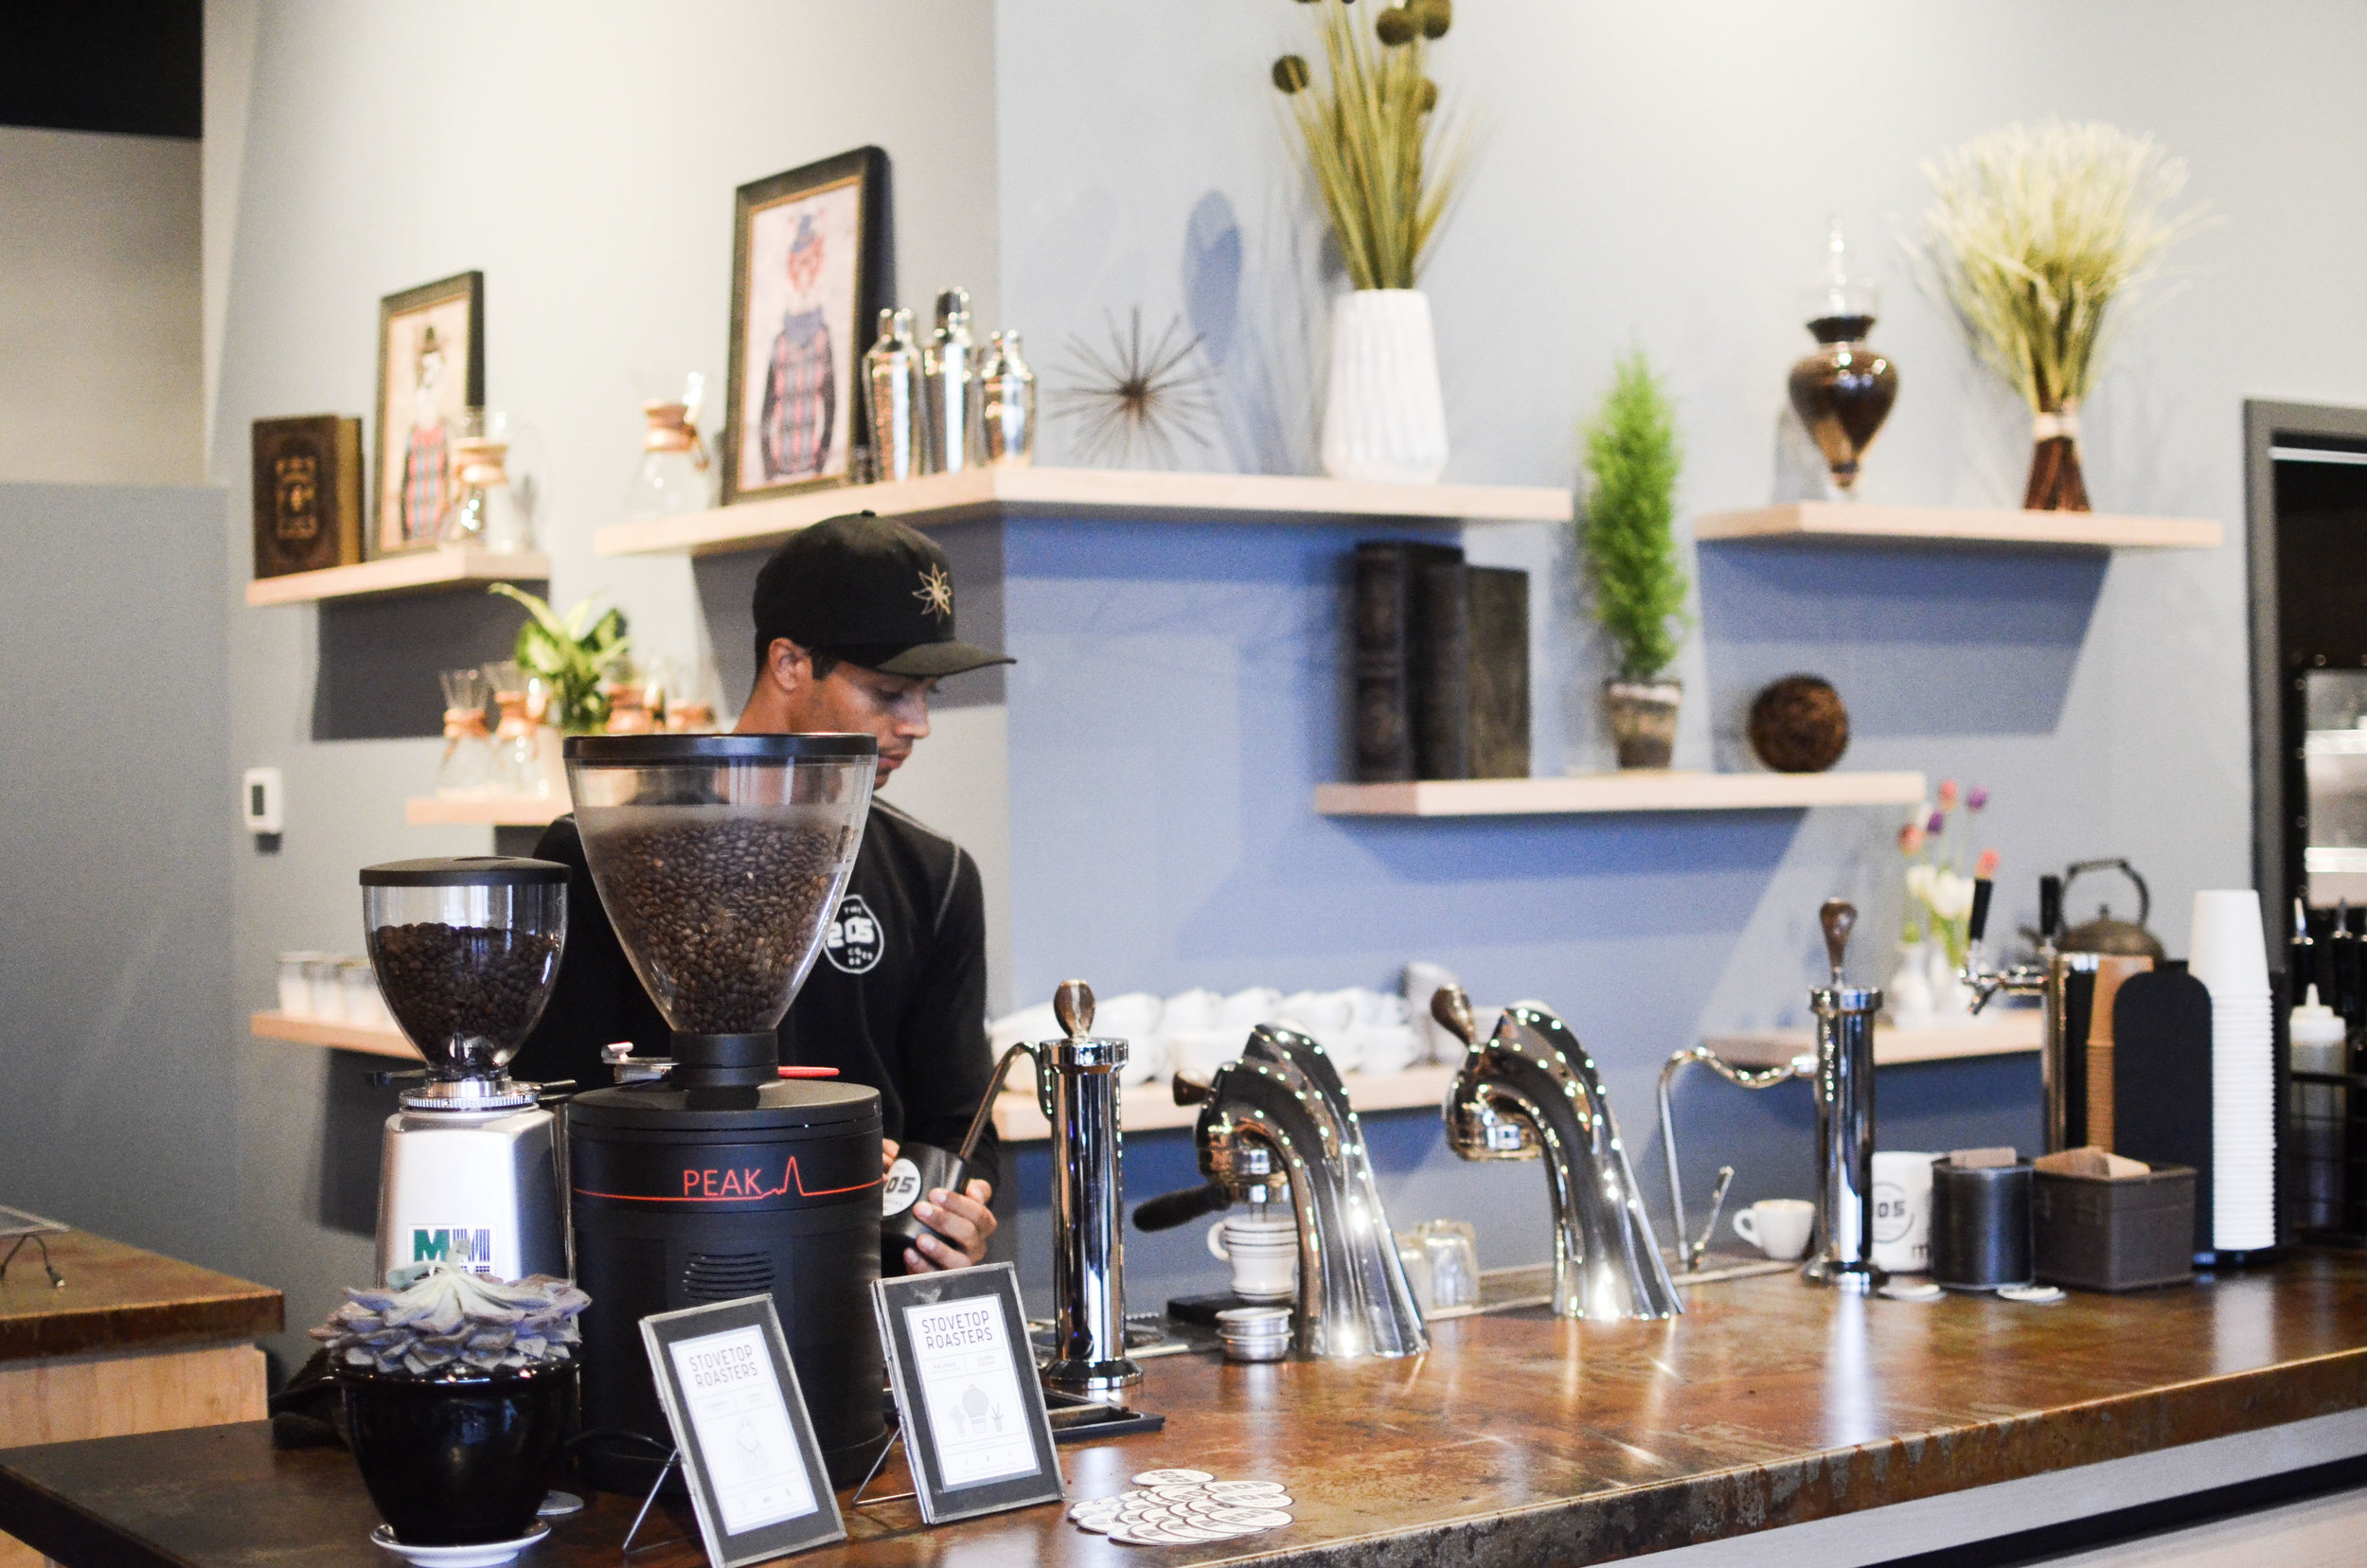 Wendling_Boyd_Daily_Fika_205_Coffee_bar-3.jpg